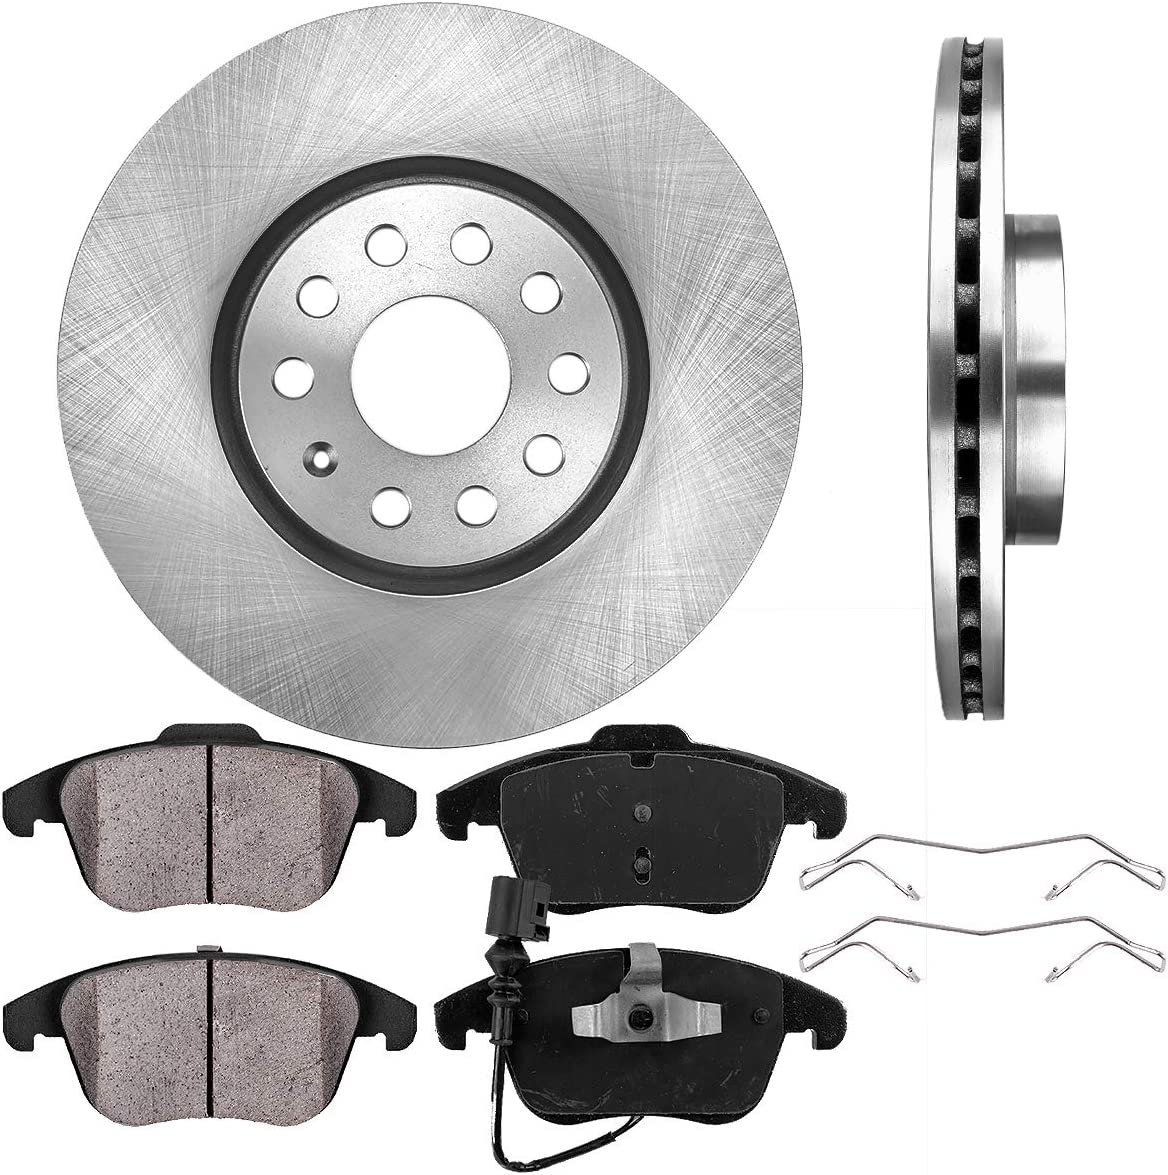 2009 2010 for Volkswagen Passat Front /& Rear Brake Rotors and Pads 312mm Rotors